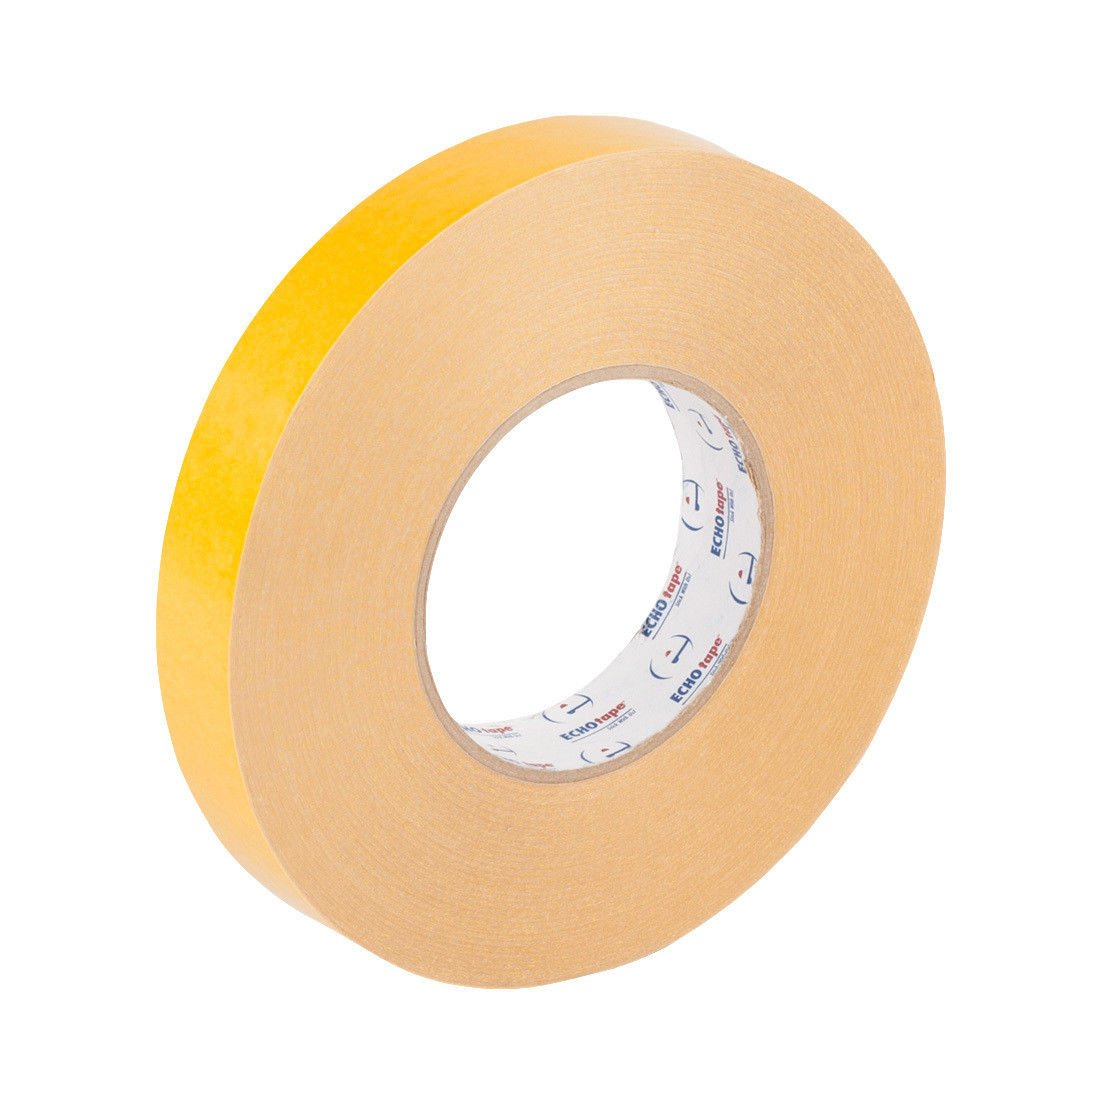 MWS Double Sided Coated High Tack PVC Tape Adhesive 9.5Mil 1inch x 56yd (24mmx50mm)